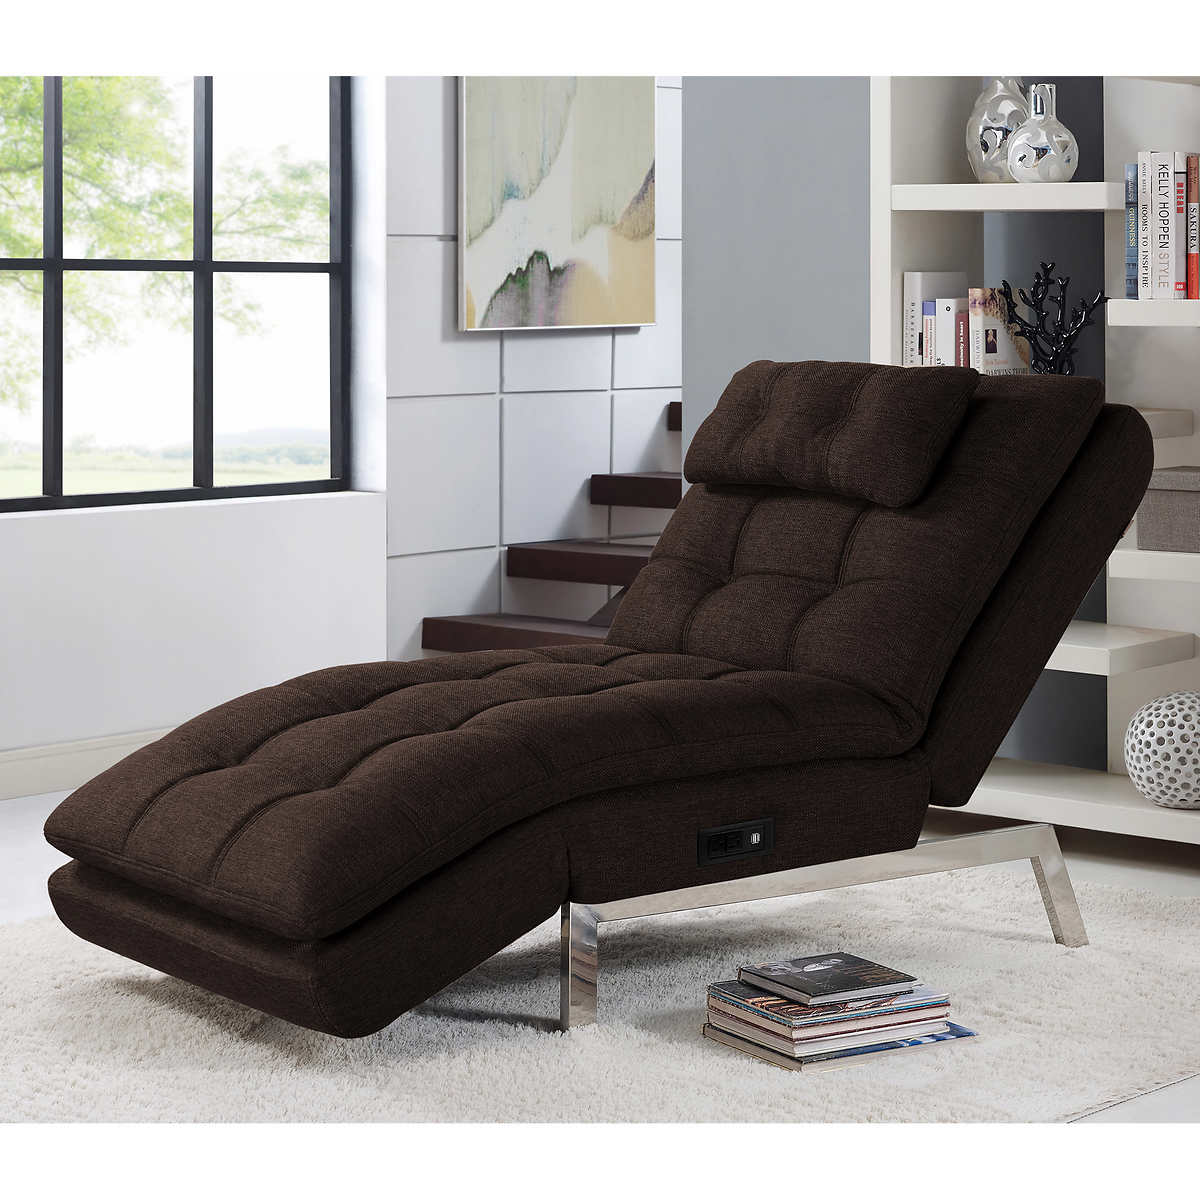 Wave chaise bed price - Macey Fabric Chaise Lounger Brown